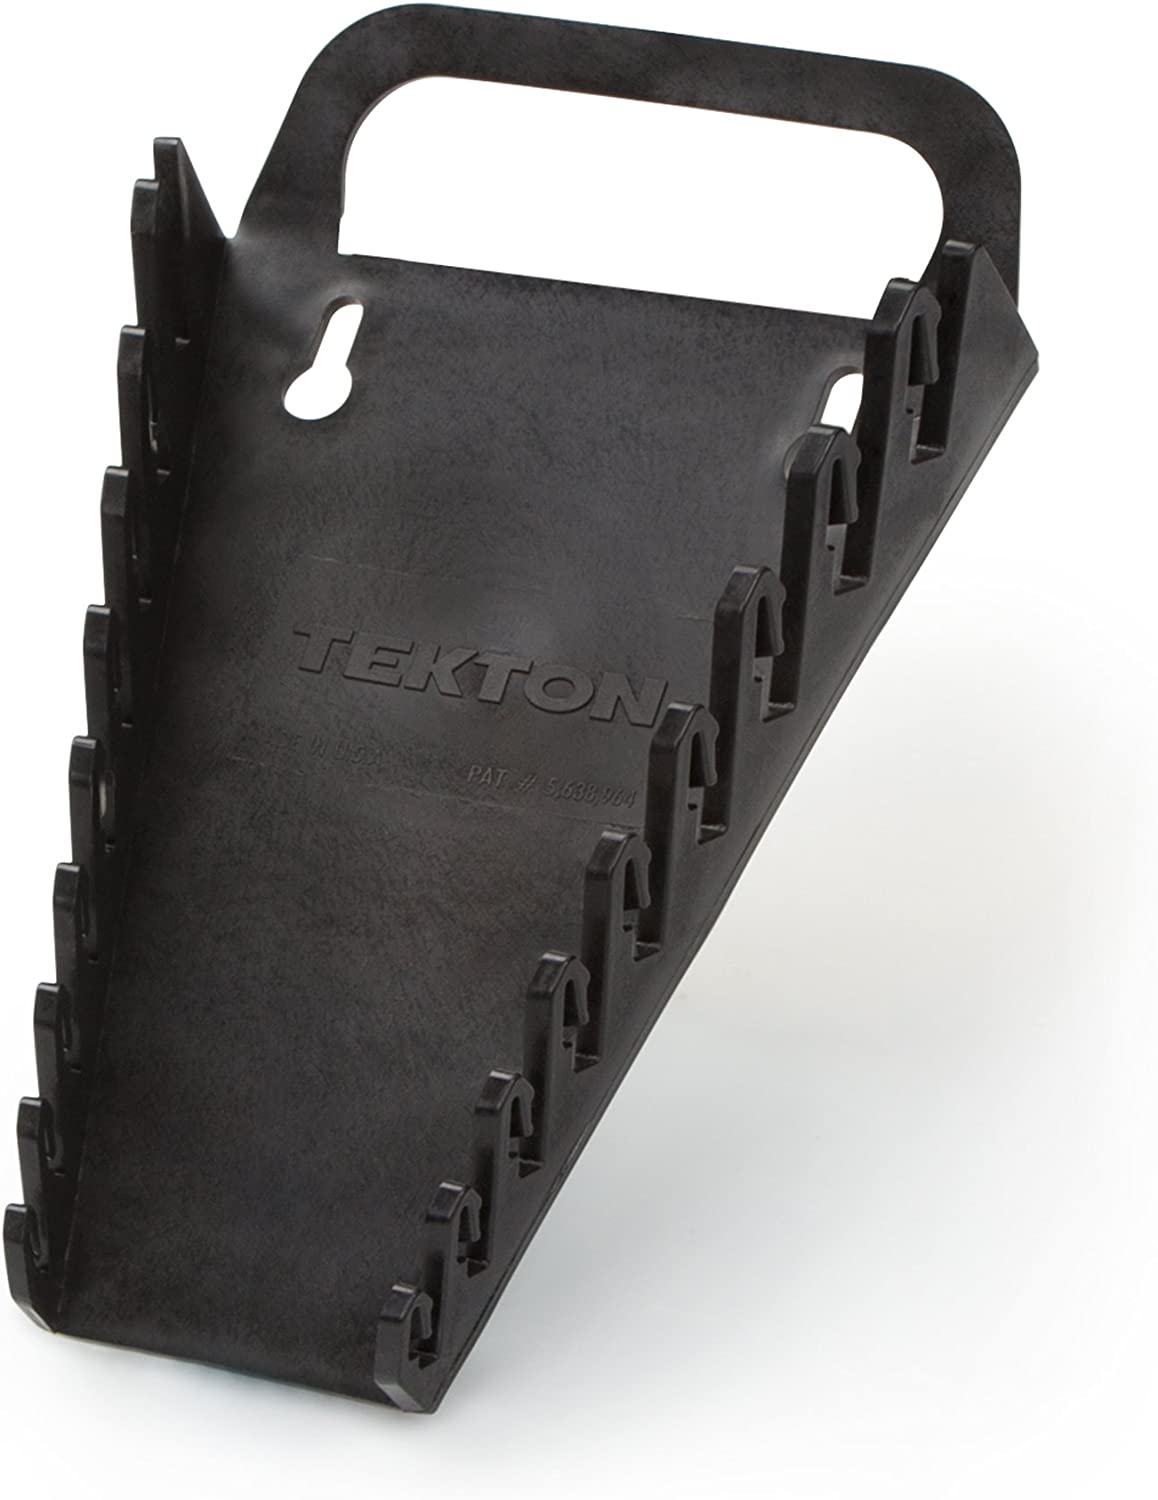 Black TEKTON 79345 9-Tool Store and Go Wrench Keeper